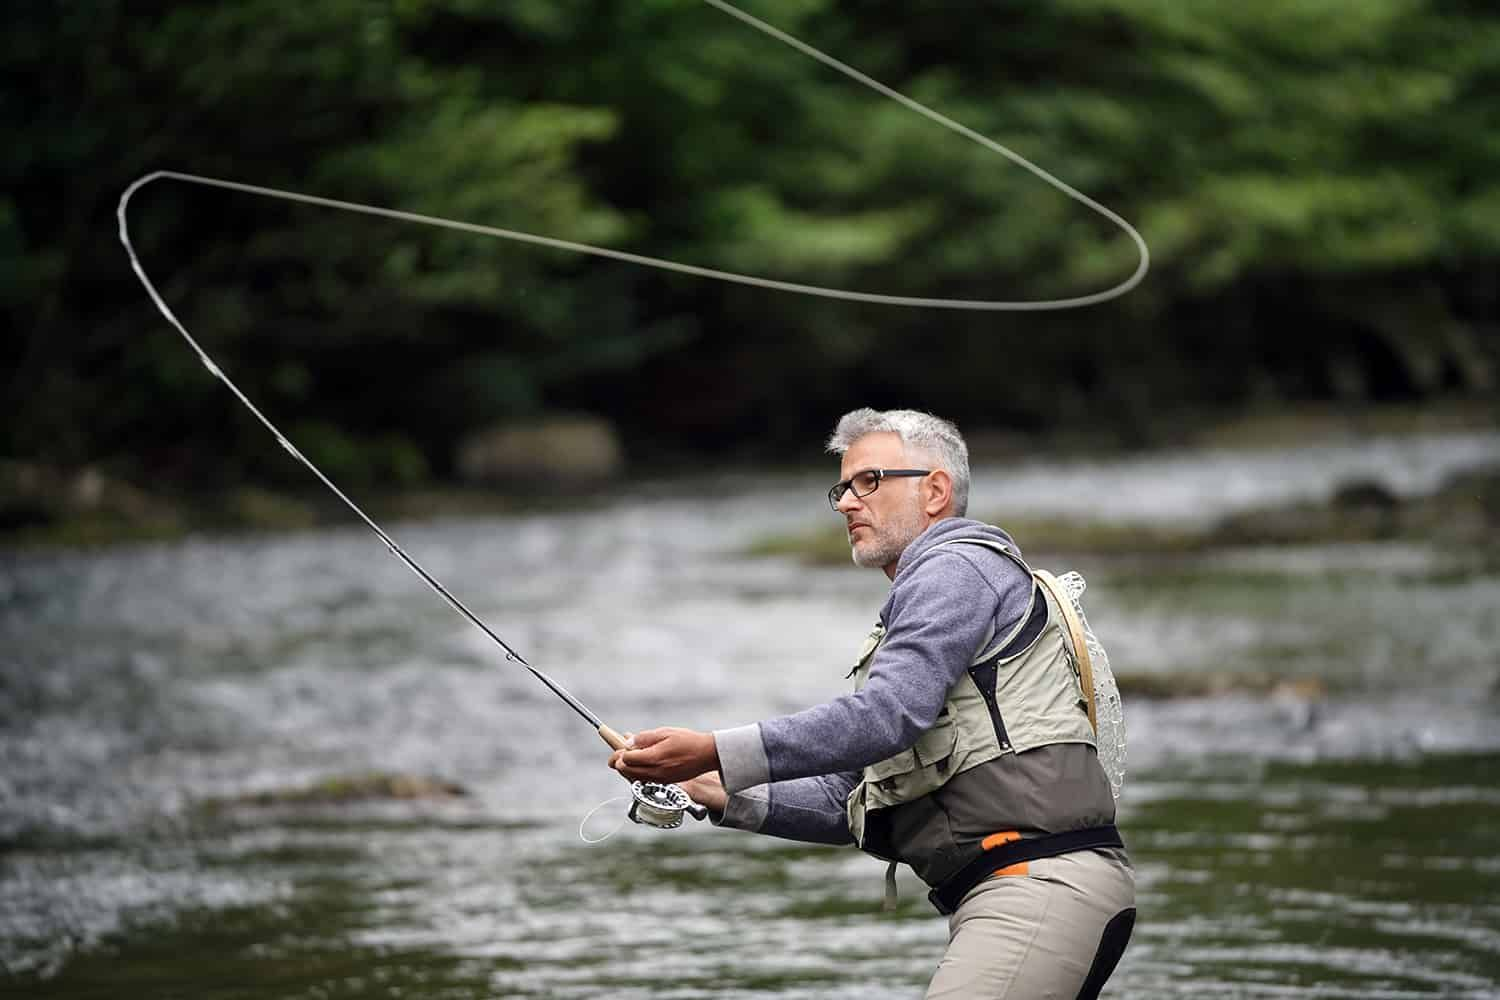 We Teach Fly Fishing Basics For Beginner And Experienced Fly Fishermen Learn About The Best Fly Rod Flies And F Fishing Basics Fly Fishing Basics Fly Fishing